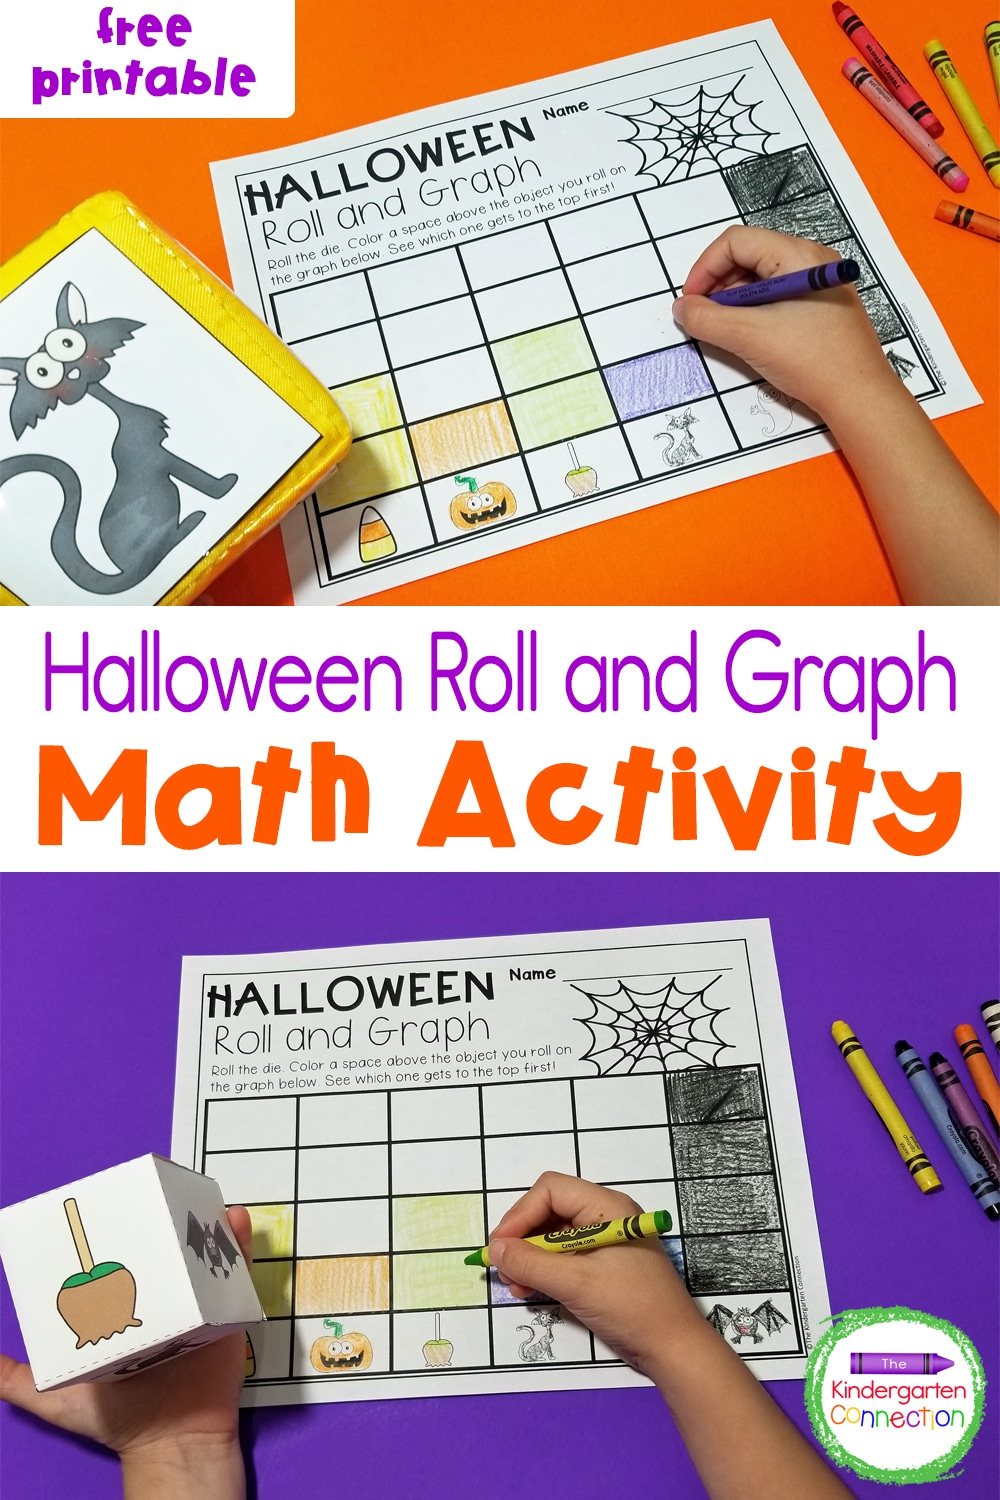 Grab our free printable Halloween Roll and Graph Math Activity! It's perfect for children in Pre-K and Kindergarten!